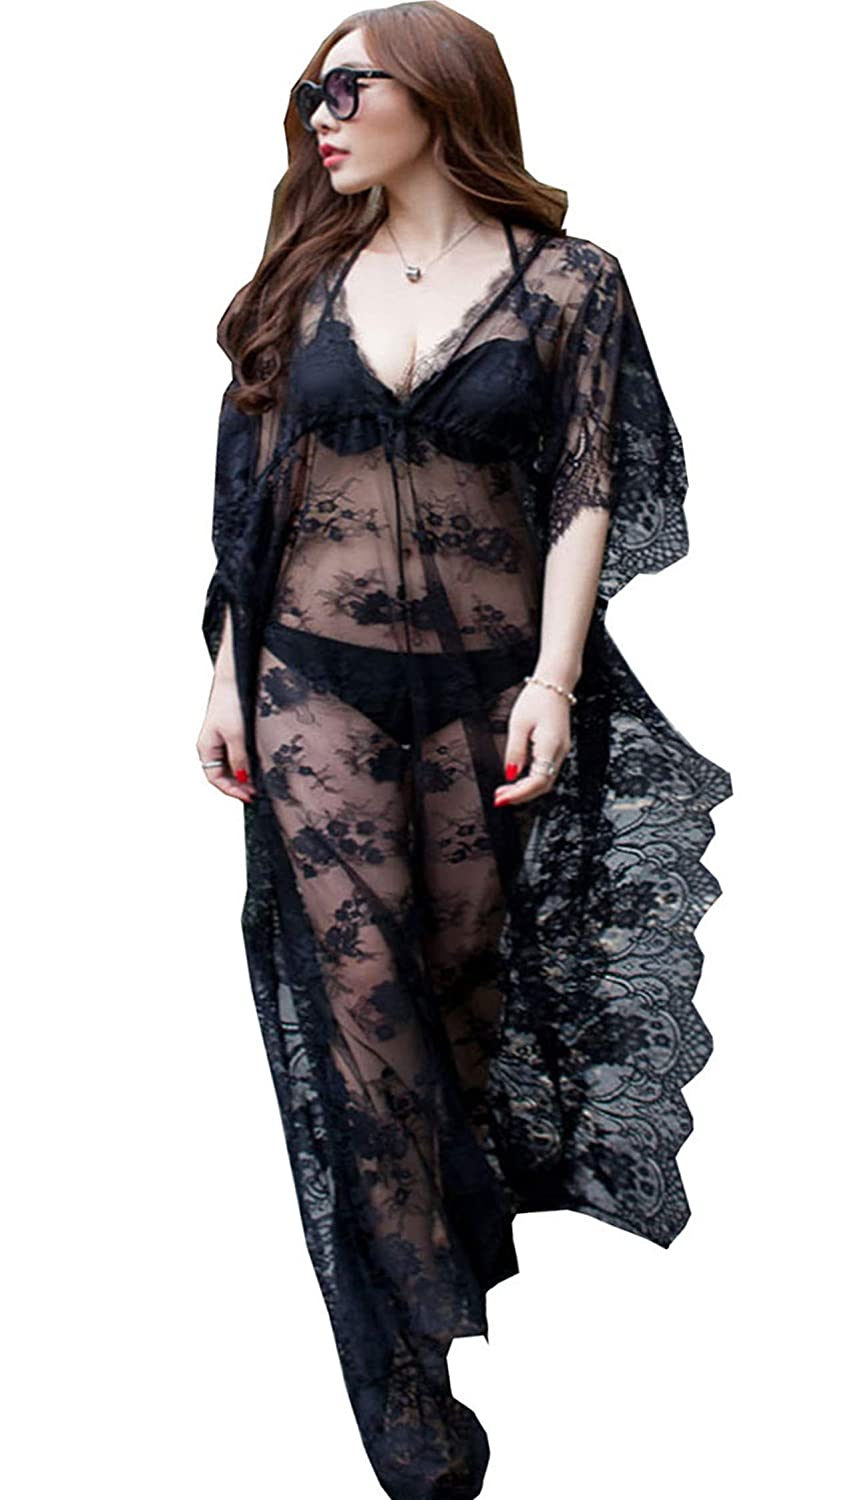 7dae1863b3736 Santwo Fashion Sexy Swimsuit Cover Up Floral Lace Long Beach Dress Beachwear